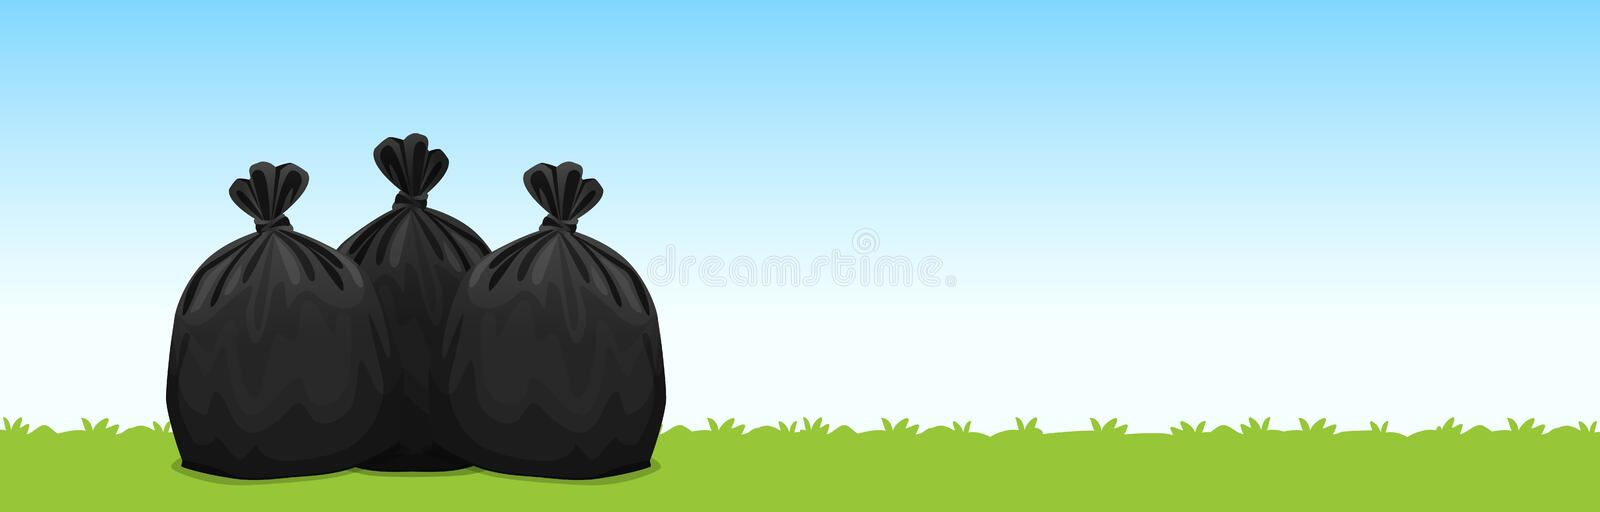 Three black plastic garbage bags on the grass blue sky background, garbage bags for waste, pollution plastic bag waste, 3r ad stock illustration